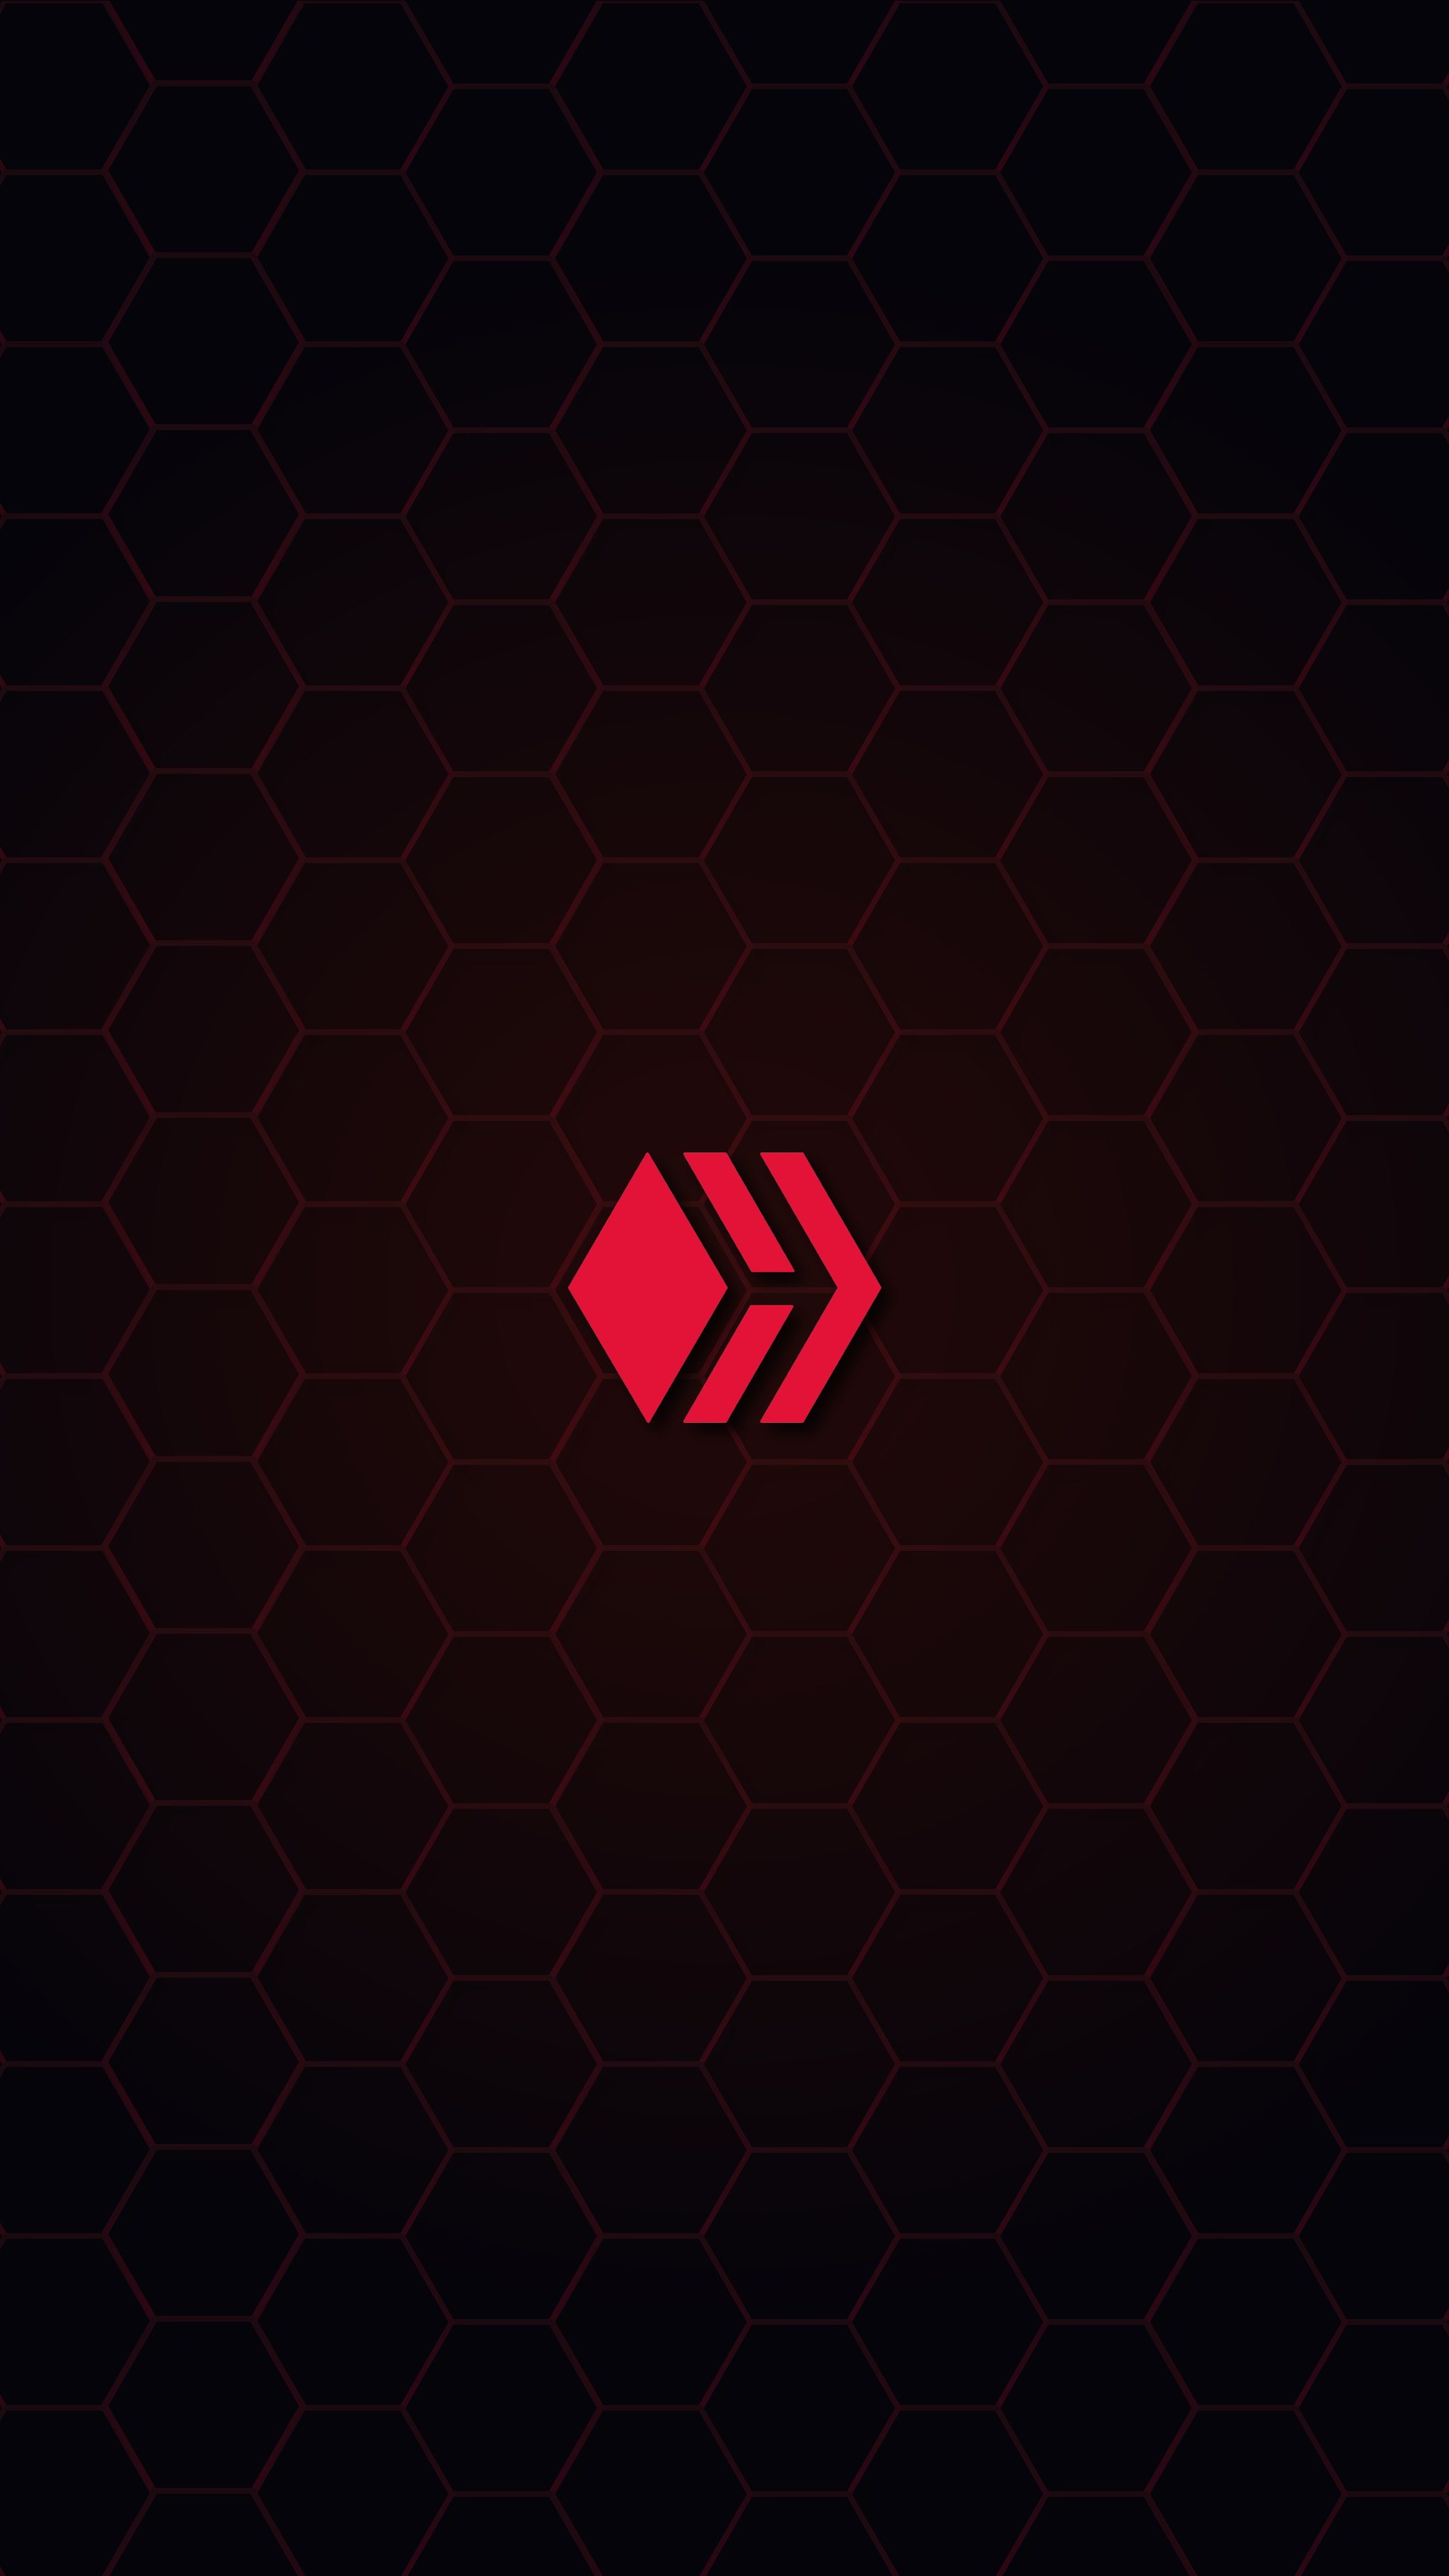 wallpapers-05.png